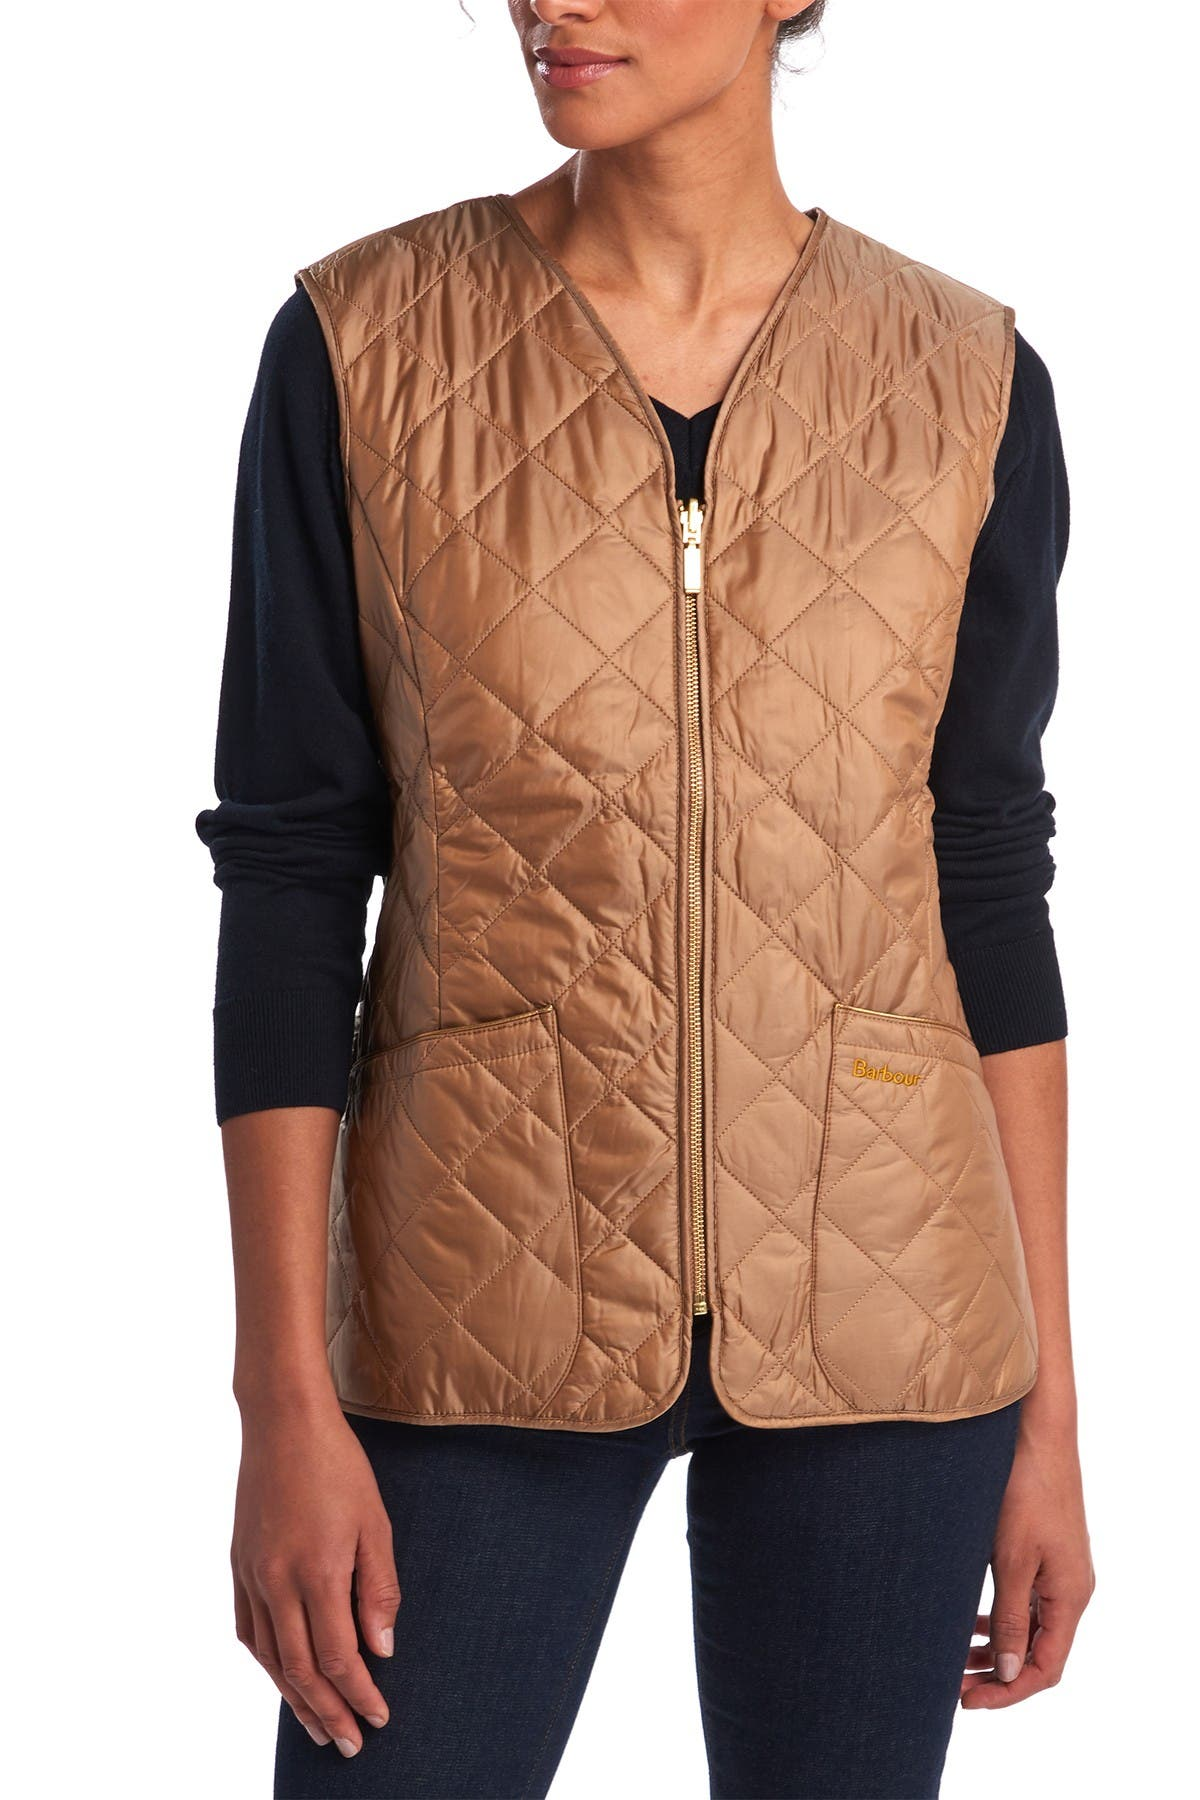 Image of Barbour Betty Fleece Vest Liner